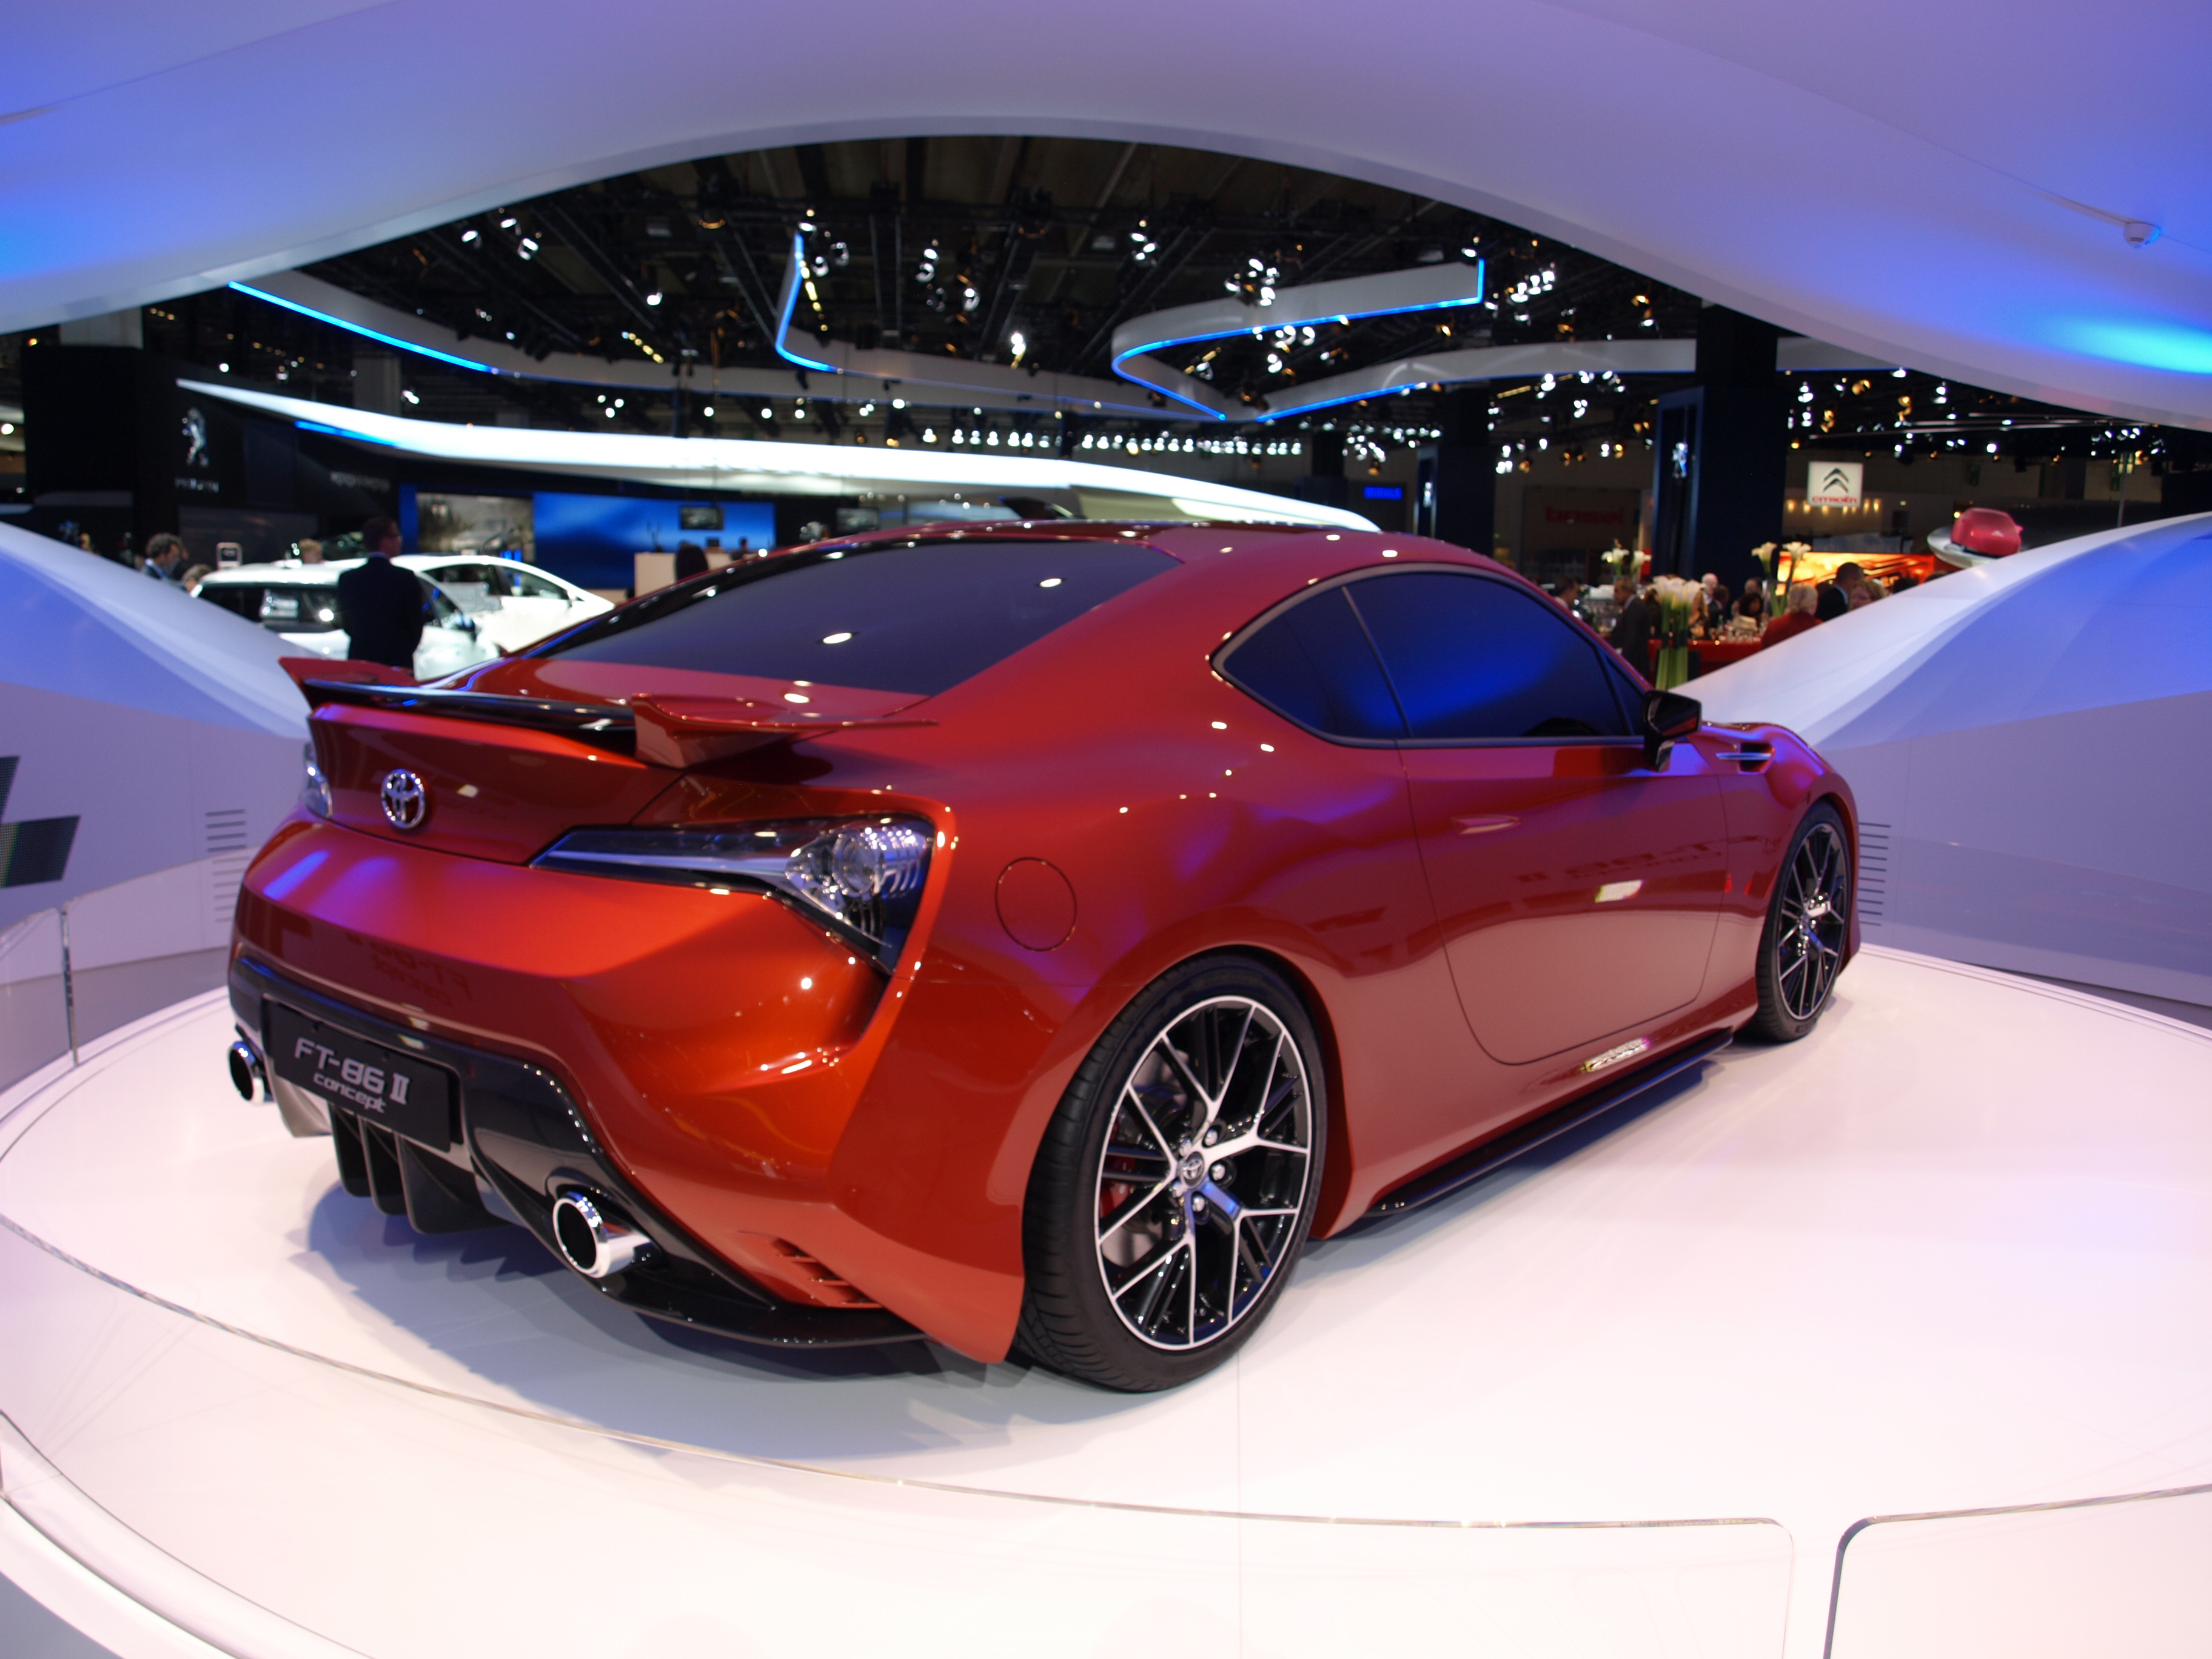 http://images.caradisiac.com/images/2/4/7/0/72470/S0-Francfort-2011-Toyota-FT-86-II-concept-237755.jpg